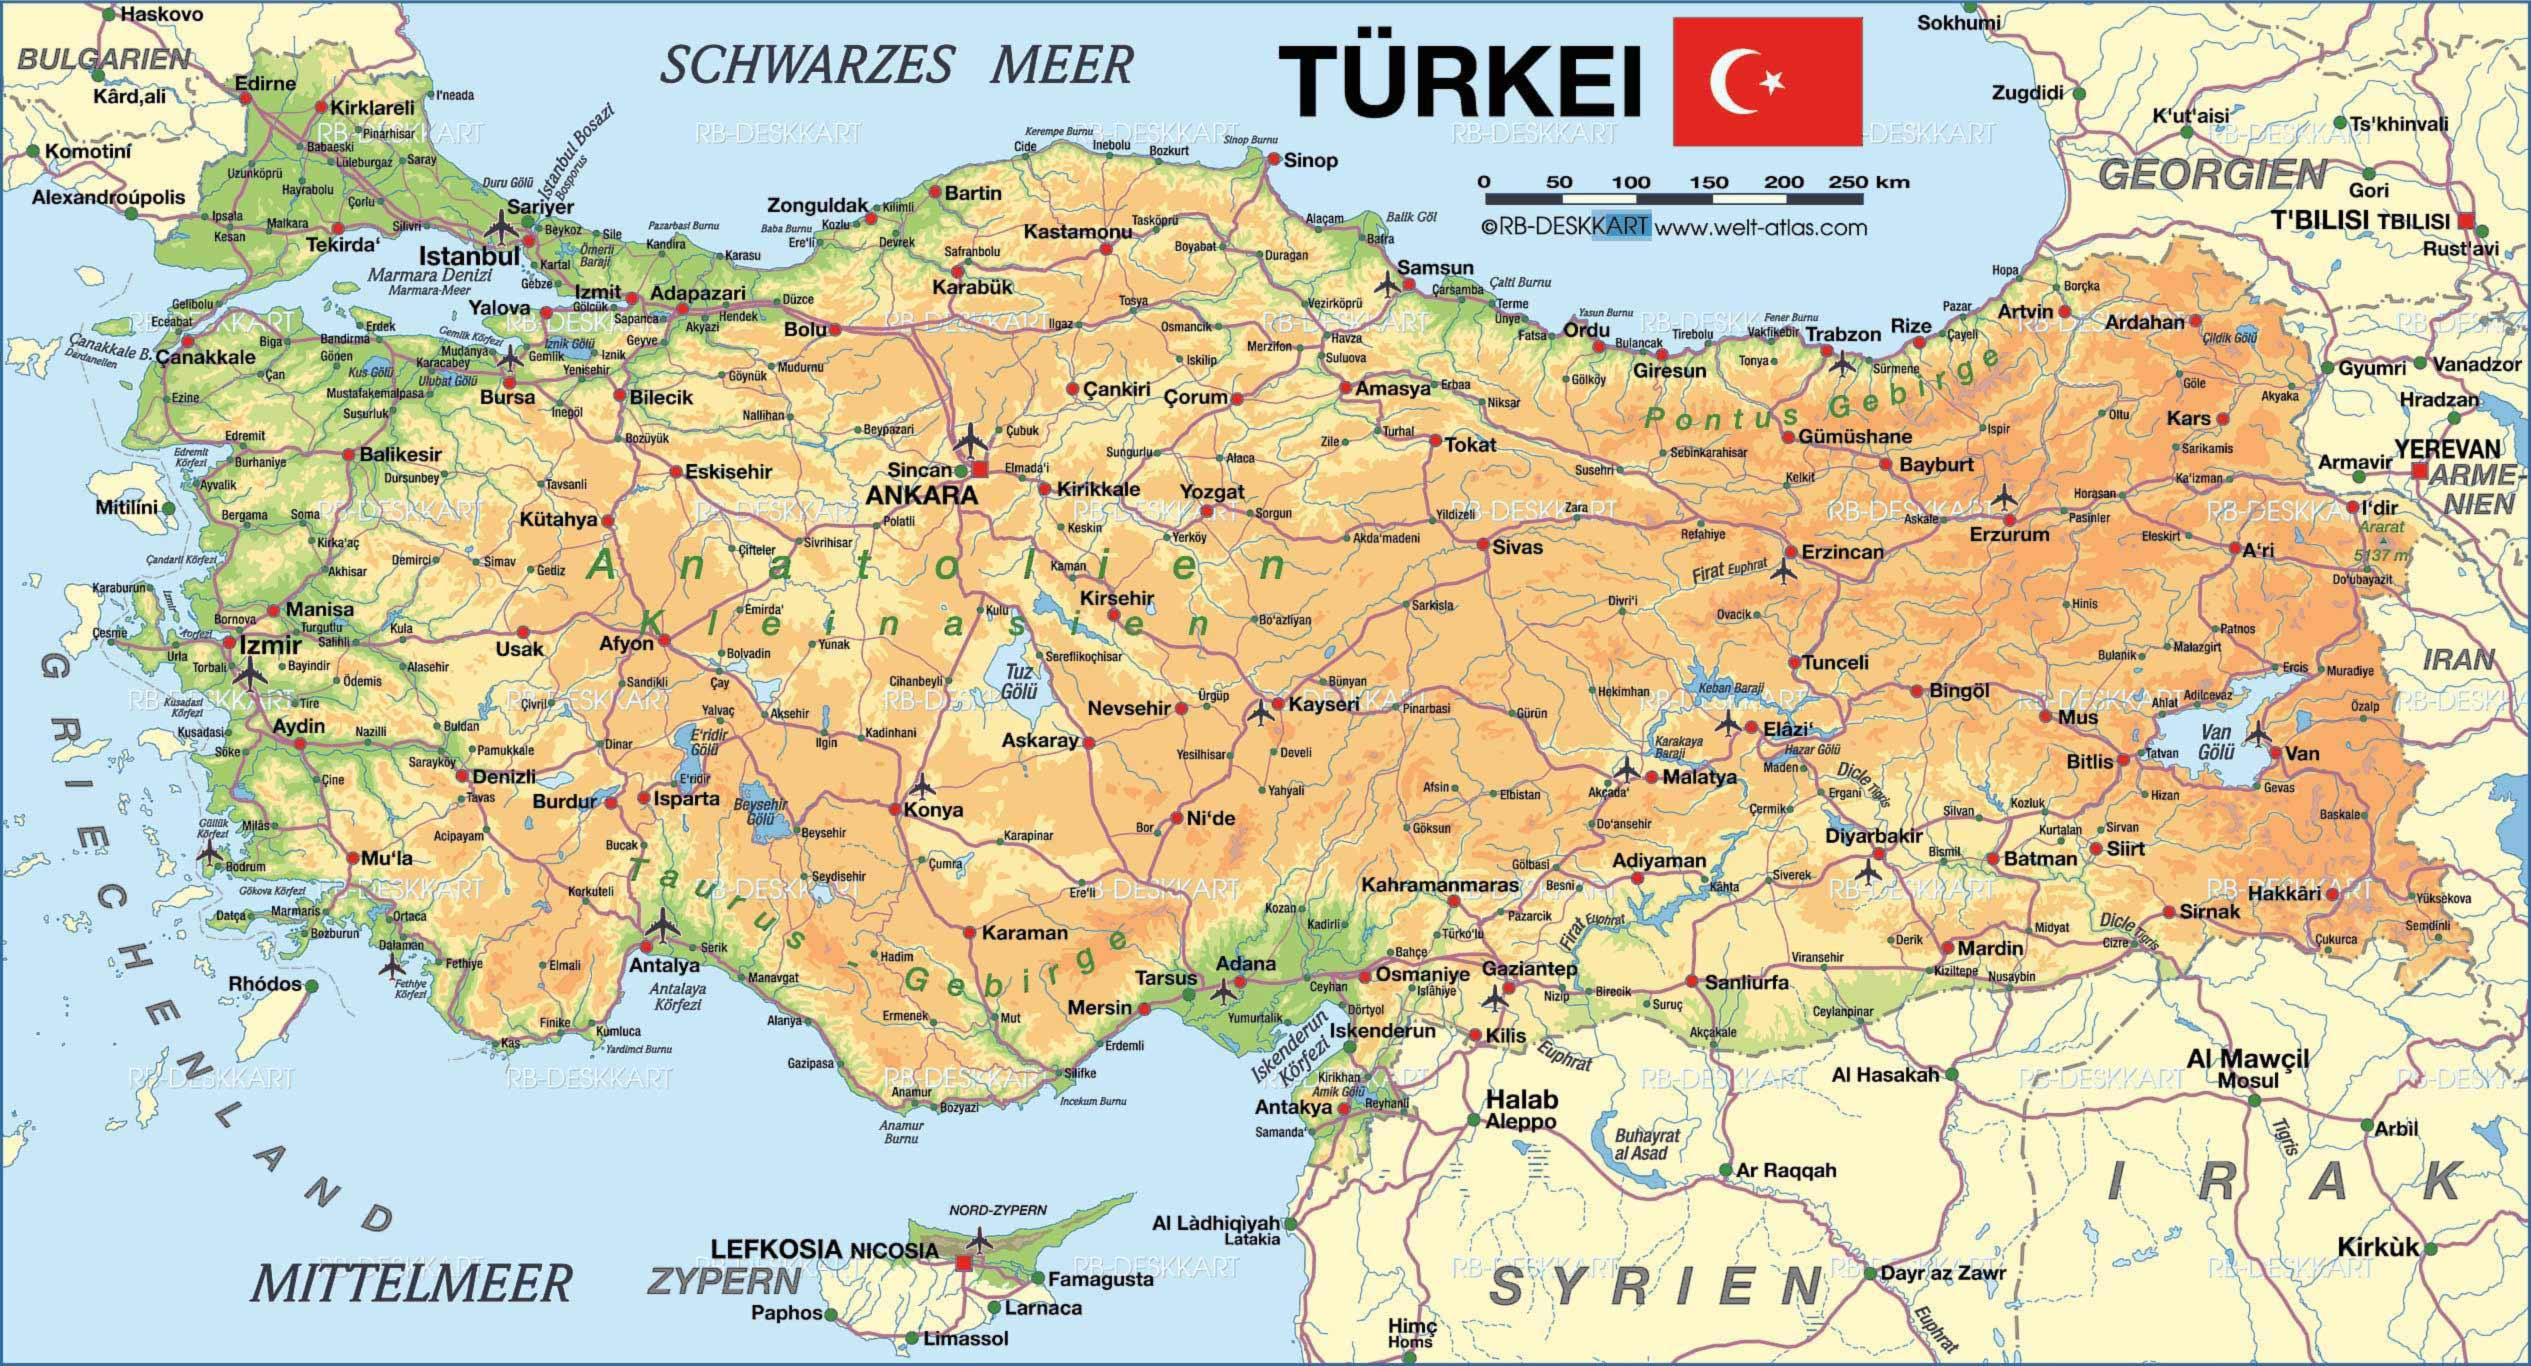 Physical Map of Turkey - Turkey Physical Map - Turkey Map on uzbekistan in map, cook islands in map, south sudan in map, easter islands in map, jordan in map, bahrain in map, troy in map, mauritania in map, togo in map, czech republic in map, cappadocia in map, antioch in map, andorra in map, luxembourg in map, turkmenistan in map, brunei in map, saudi arabia in map, saint lucia in map, djibouti in map, fertile crescent in map,